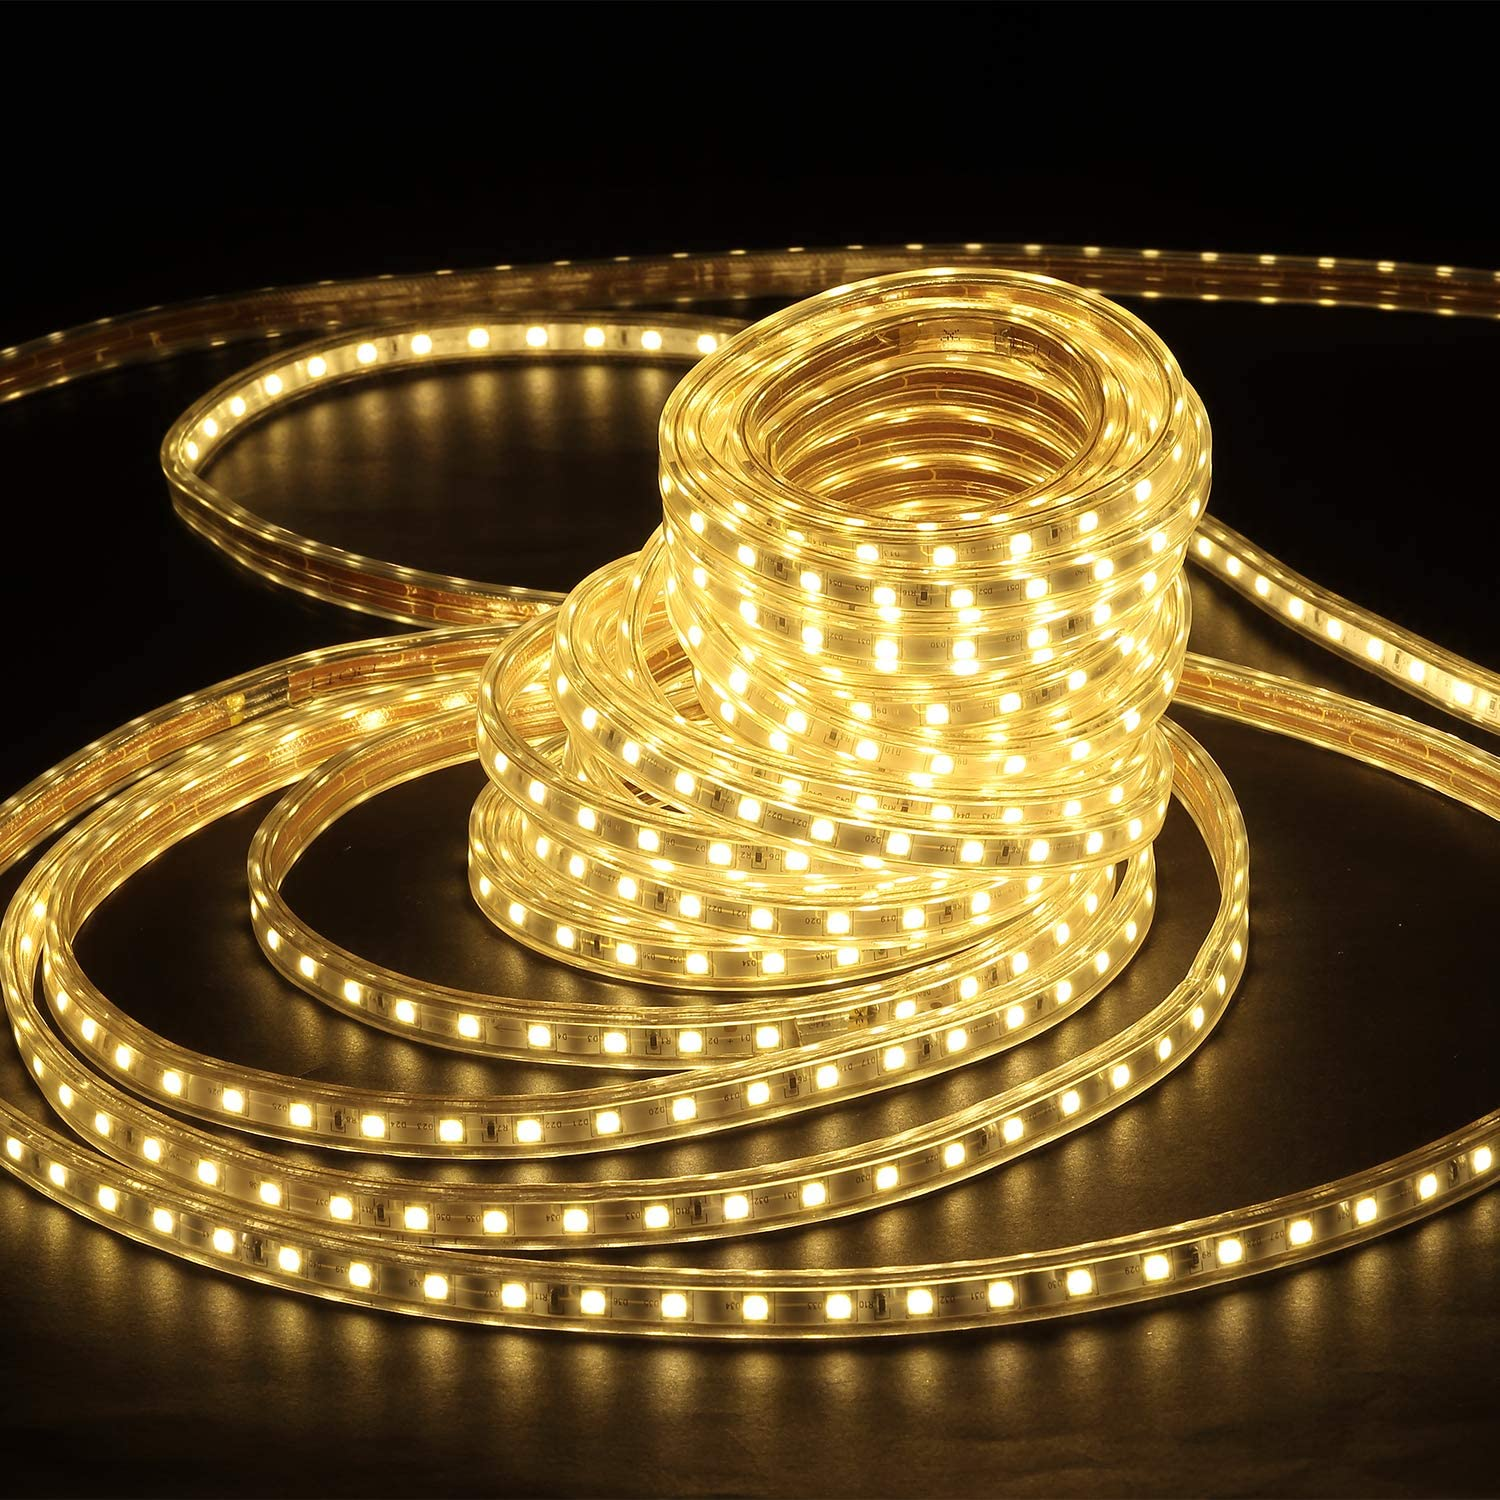 Waterproof Led Strip Lights Outdoor Indoor, Power Supply with Fuse, 50FT/15M, Warm White, 900 SMD Lights, UL Certified